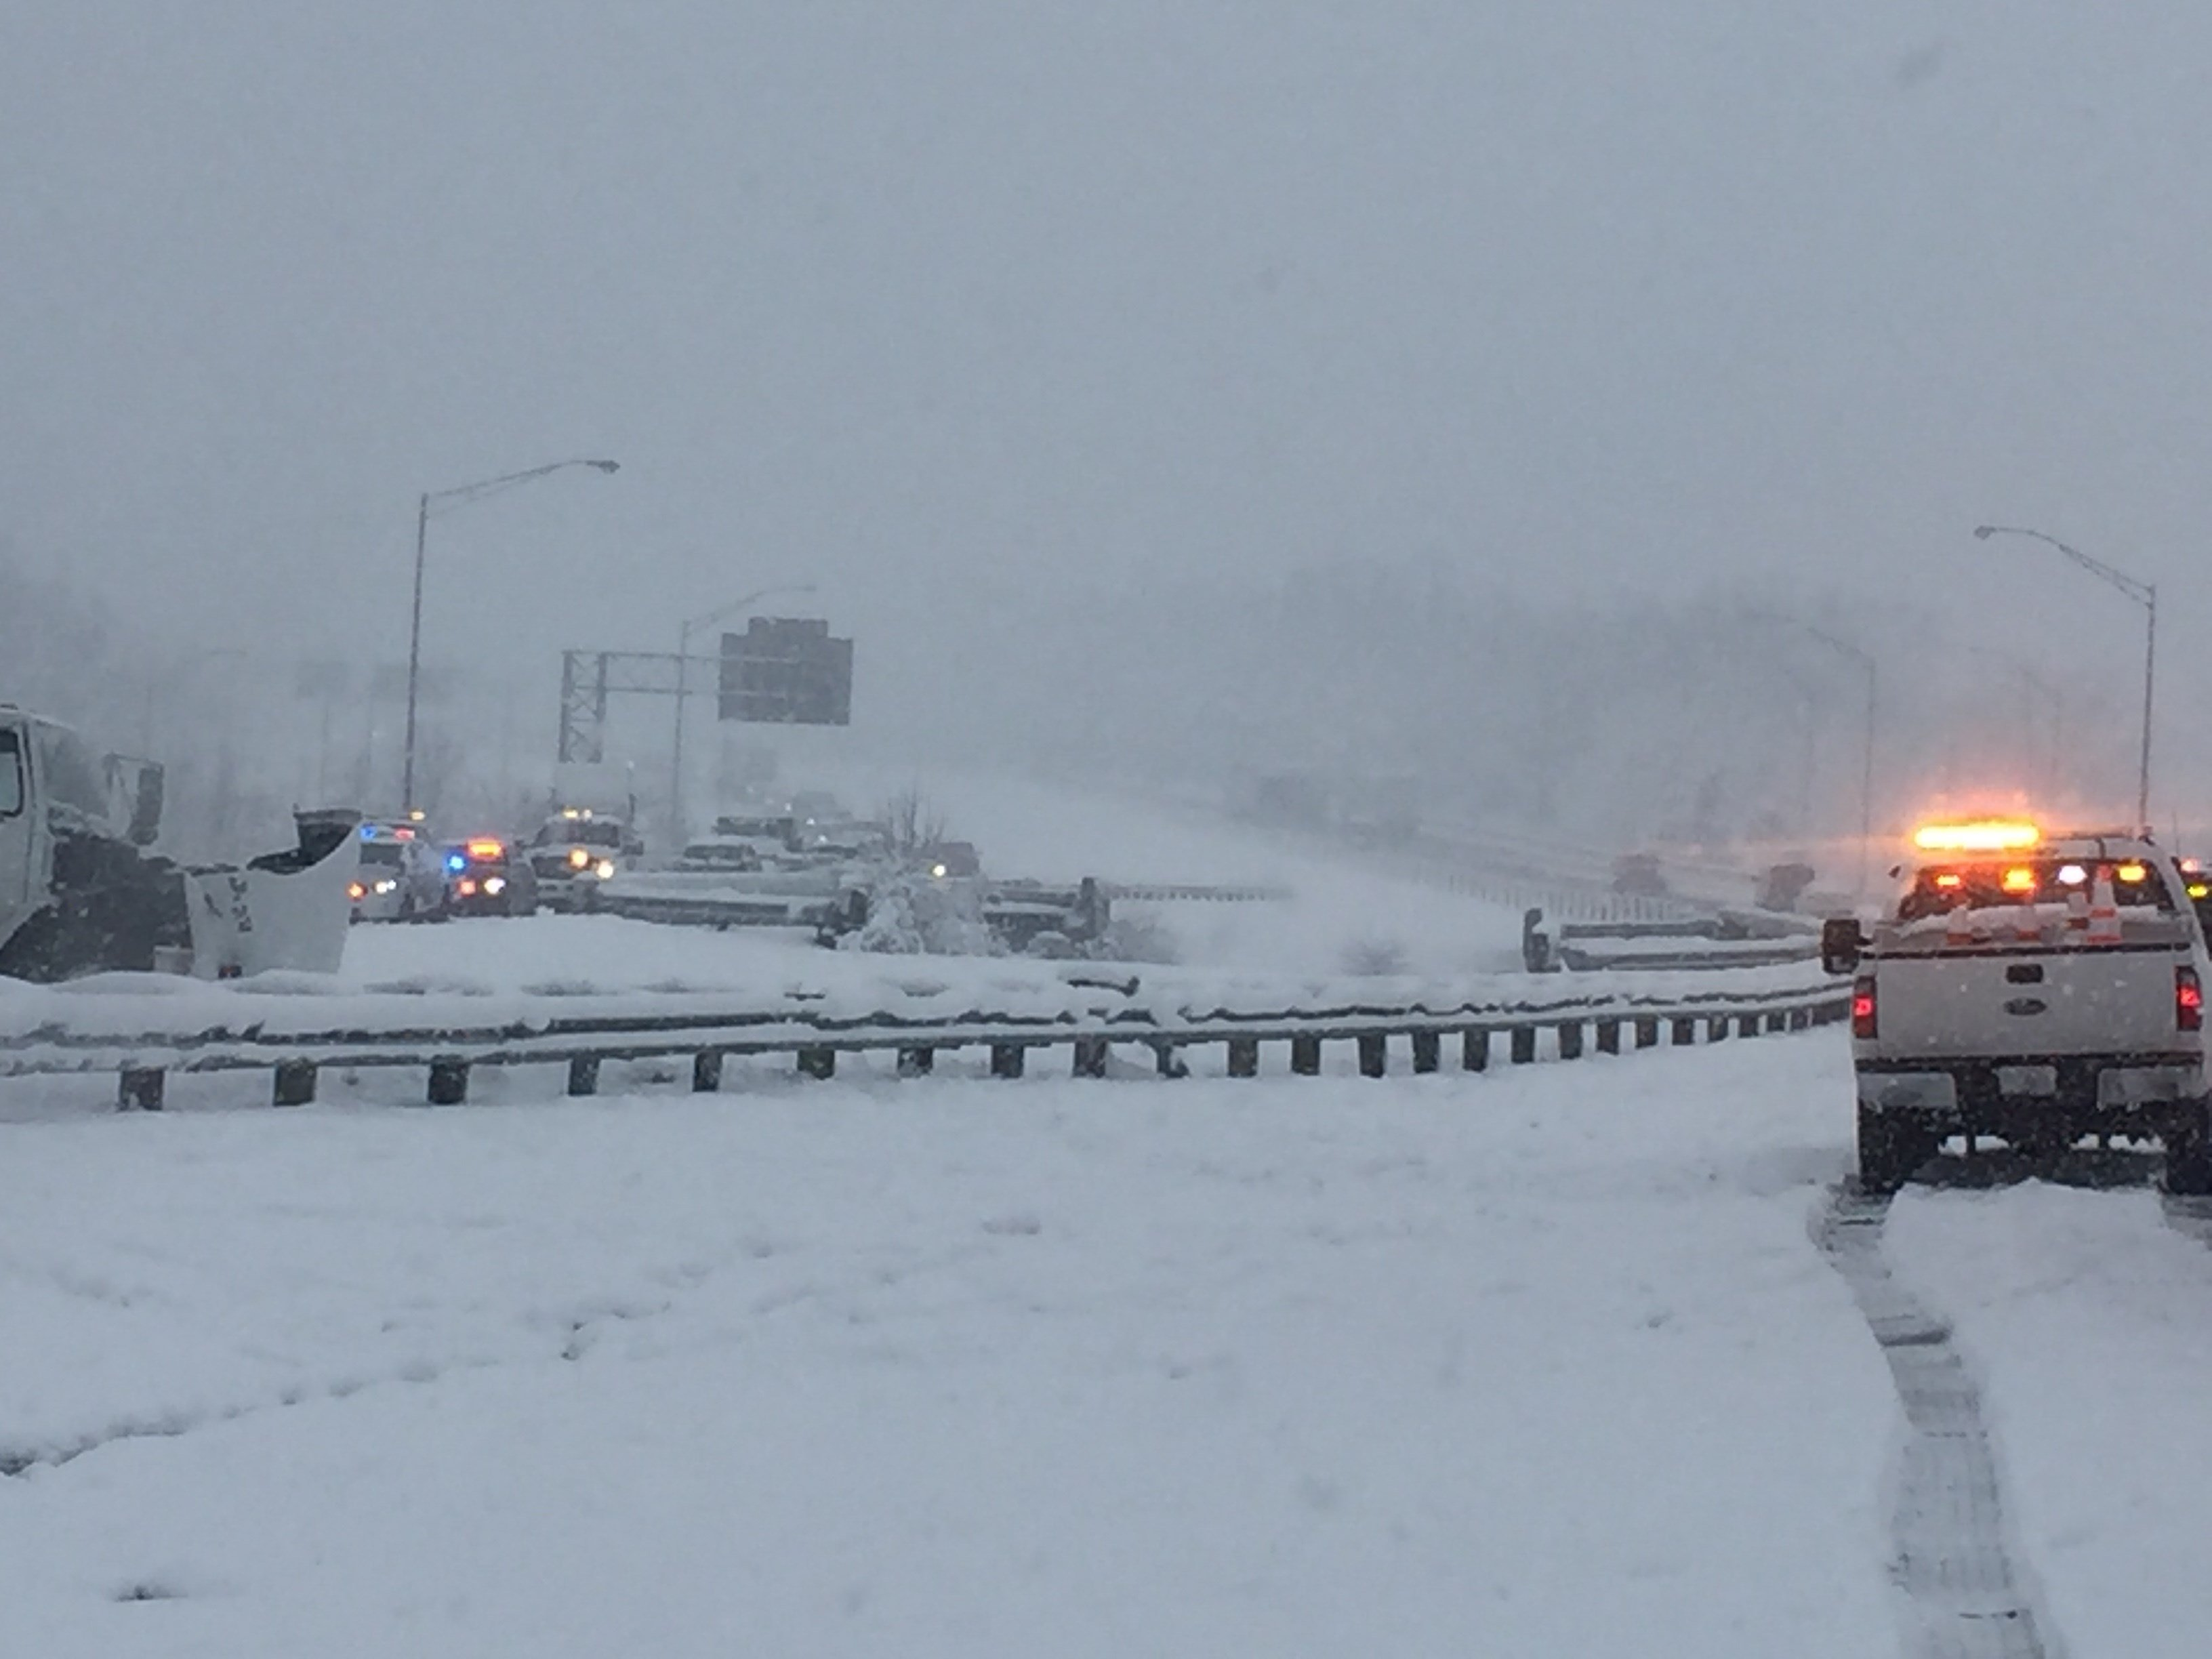 One person was injured, as a semi overturned on eastbound I-265 at the I-65 interchange.